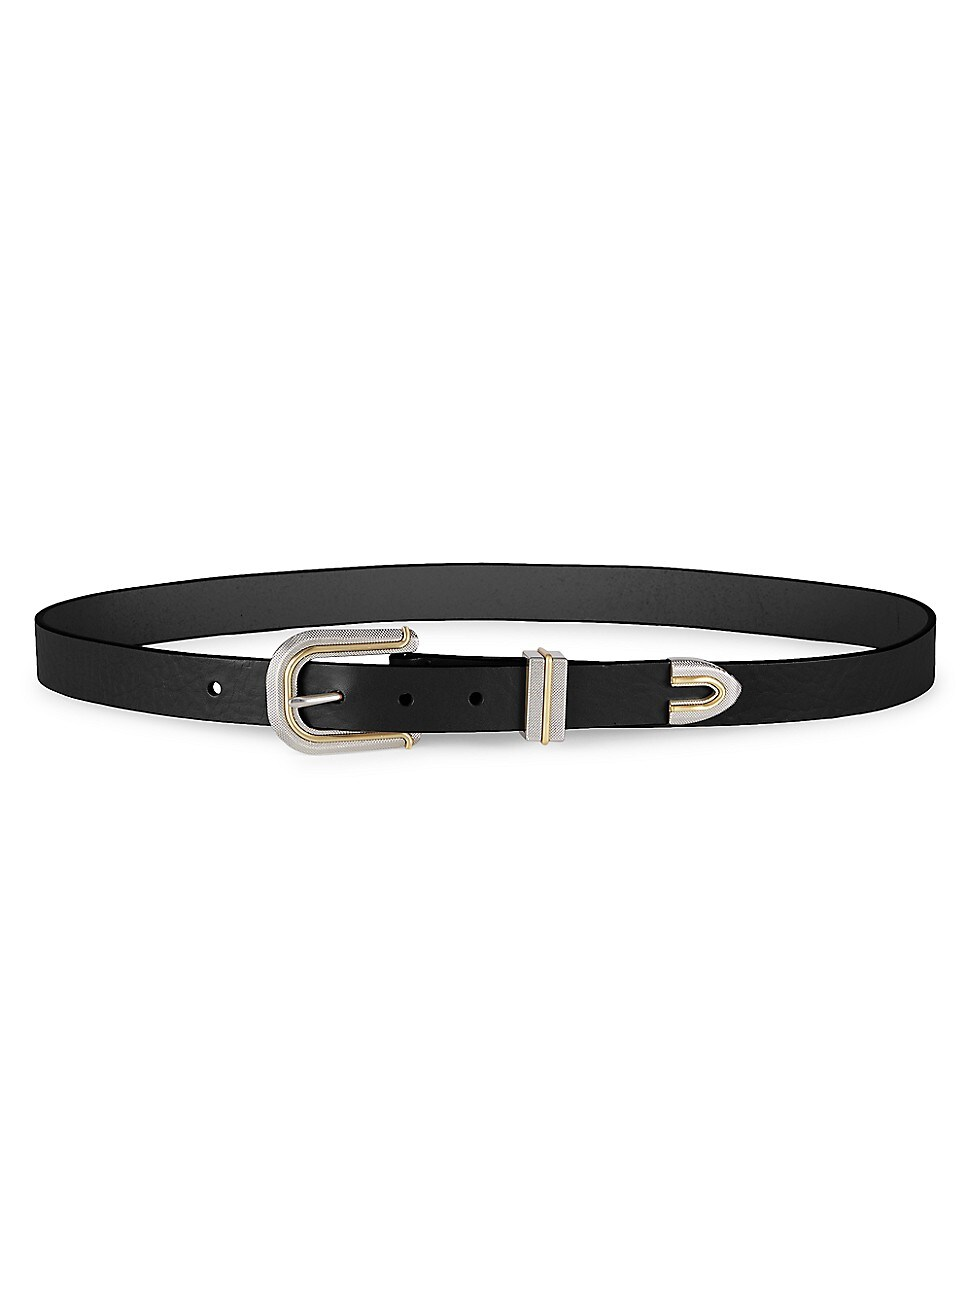 RAG & BONE WOMEN'S VENTURA LEATHER BELT